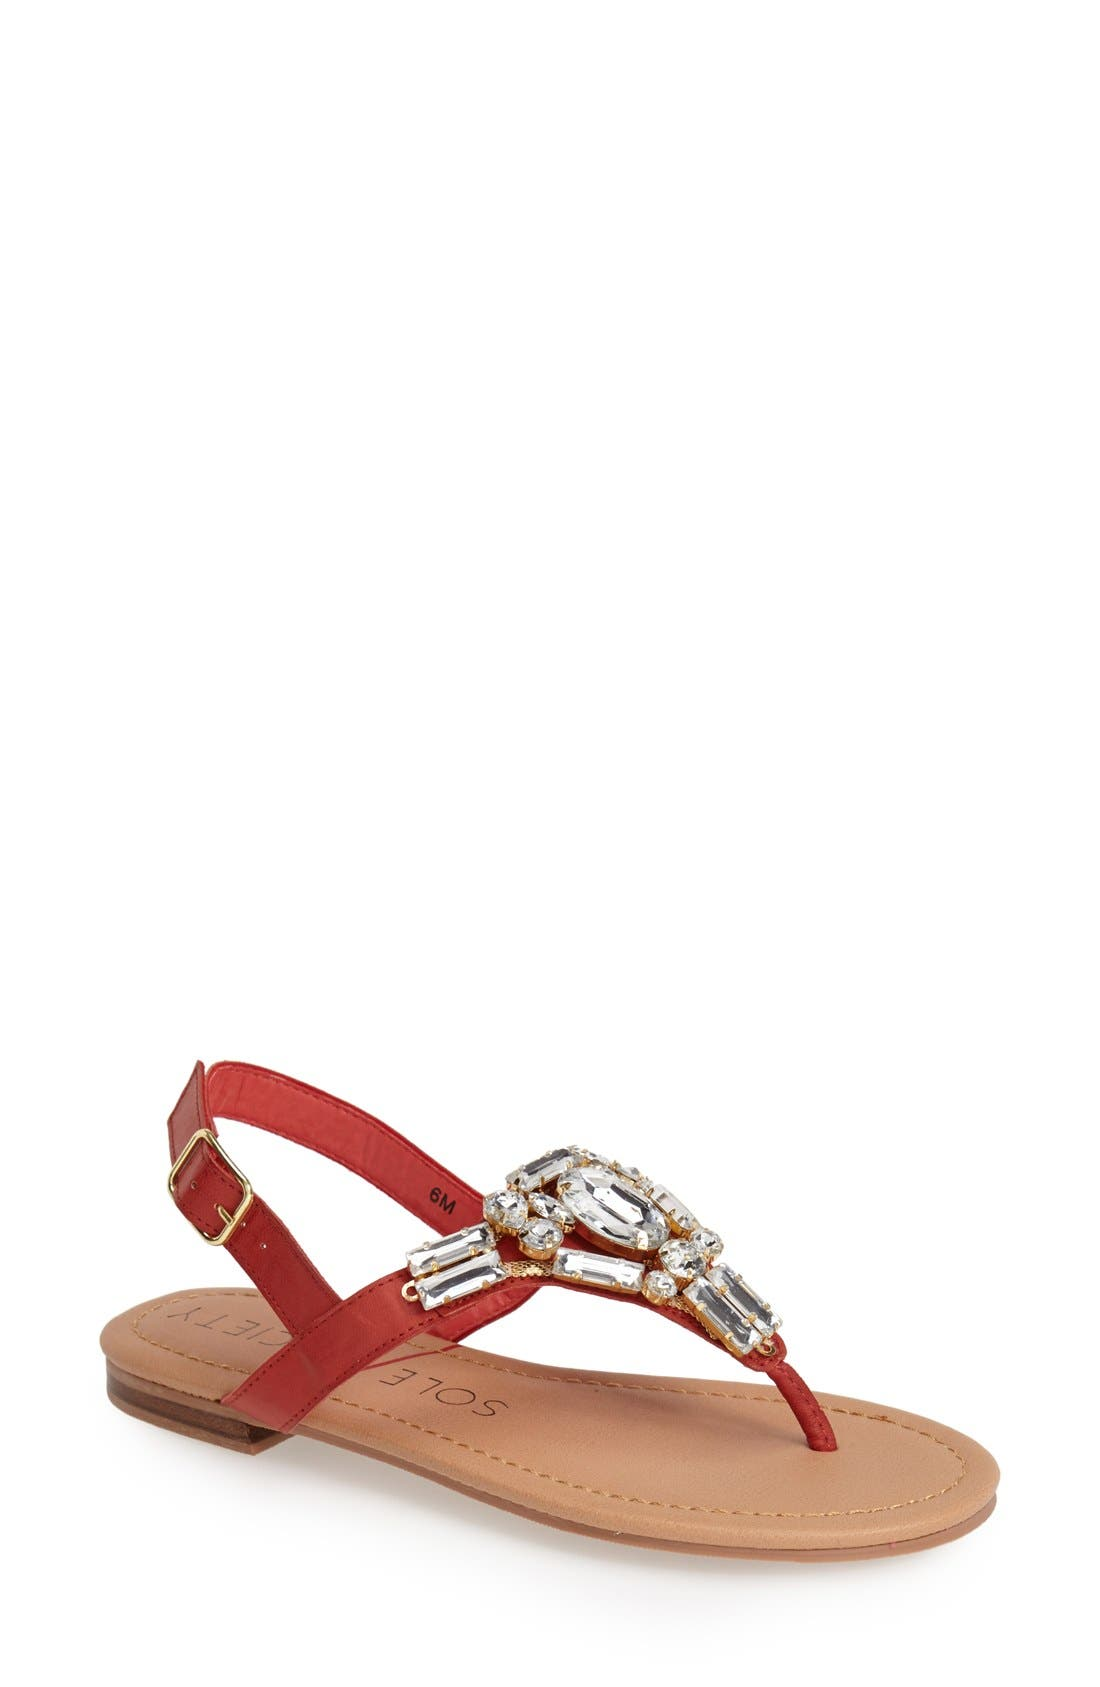 Main Image - Sole Society 'Angelin' Crystal Sandal (Women)